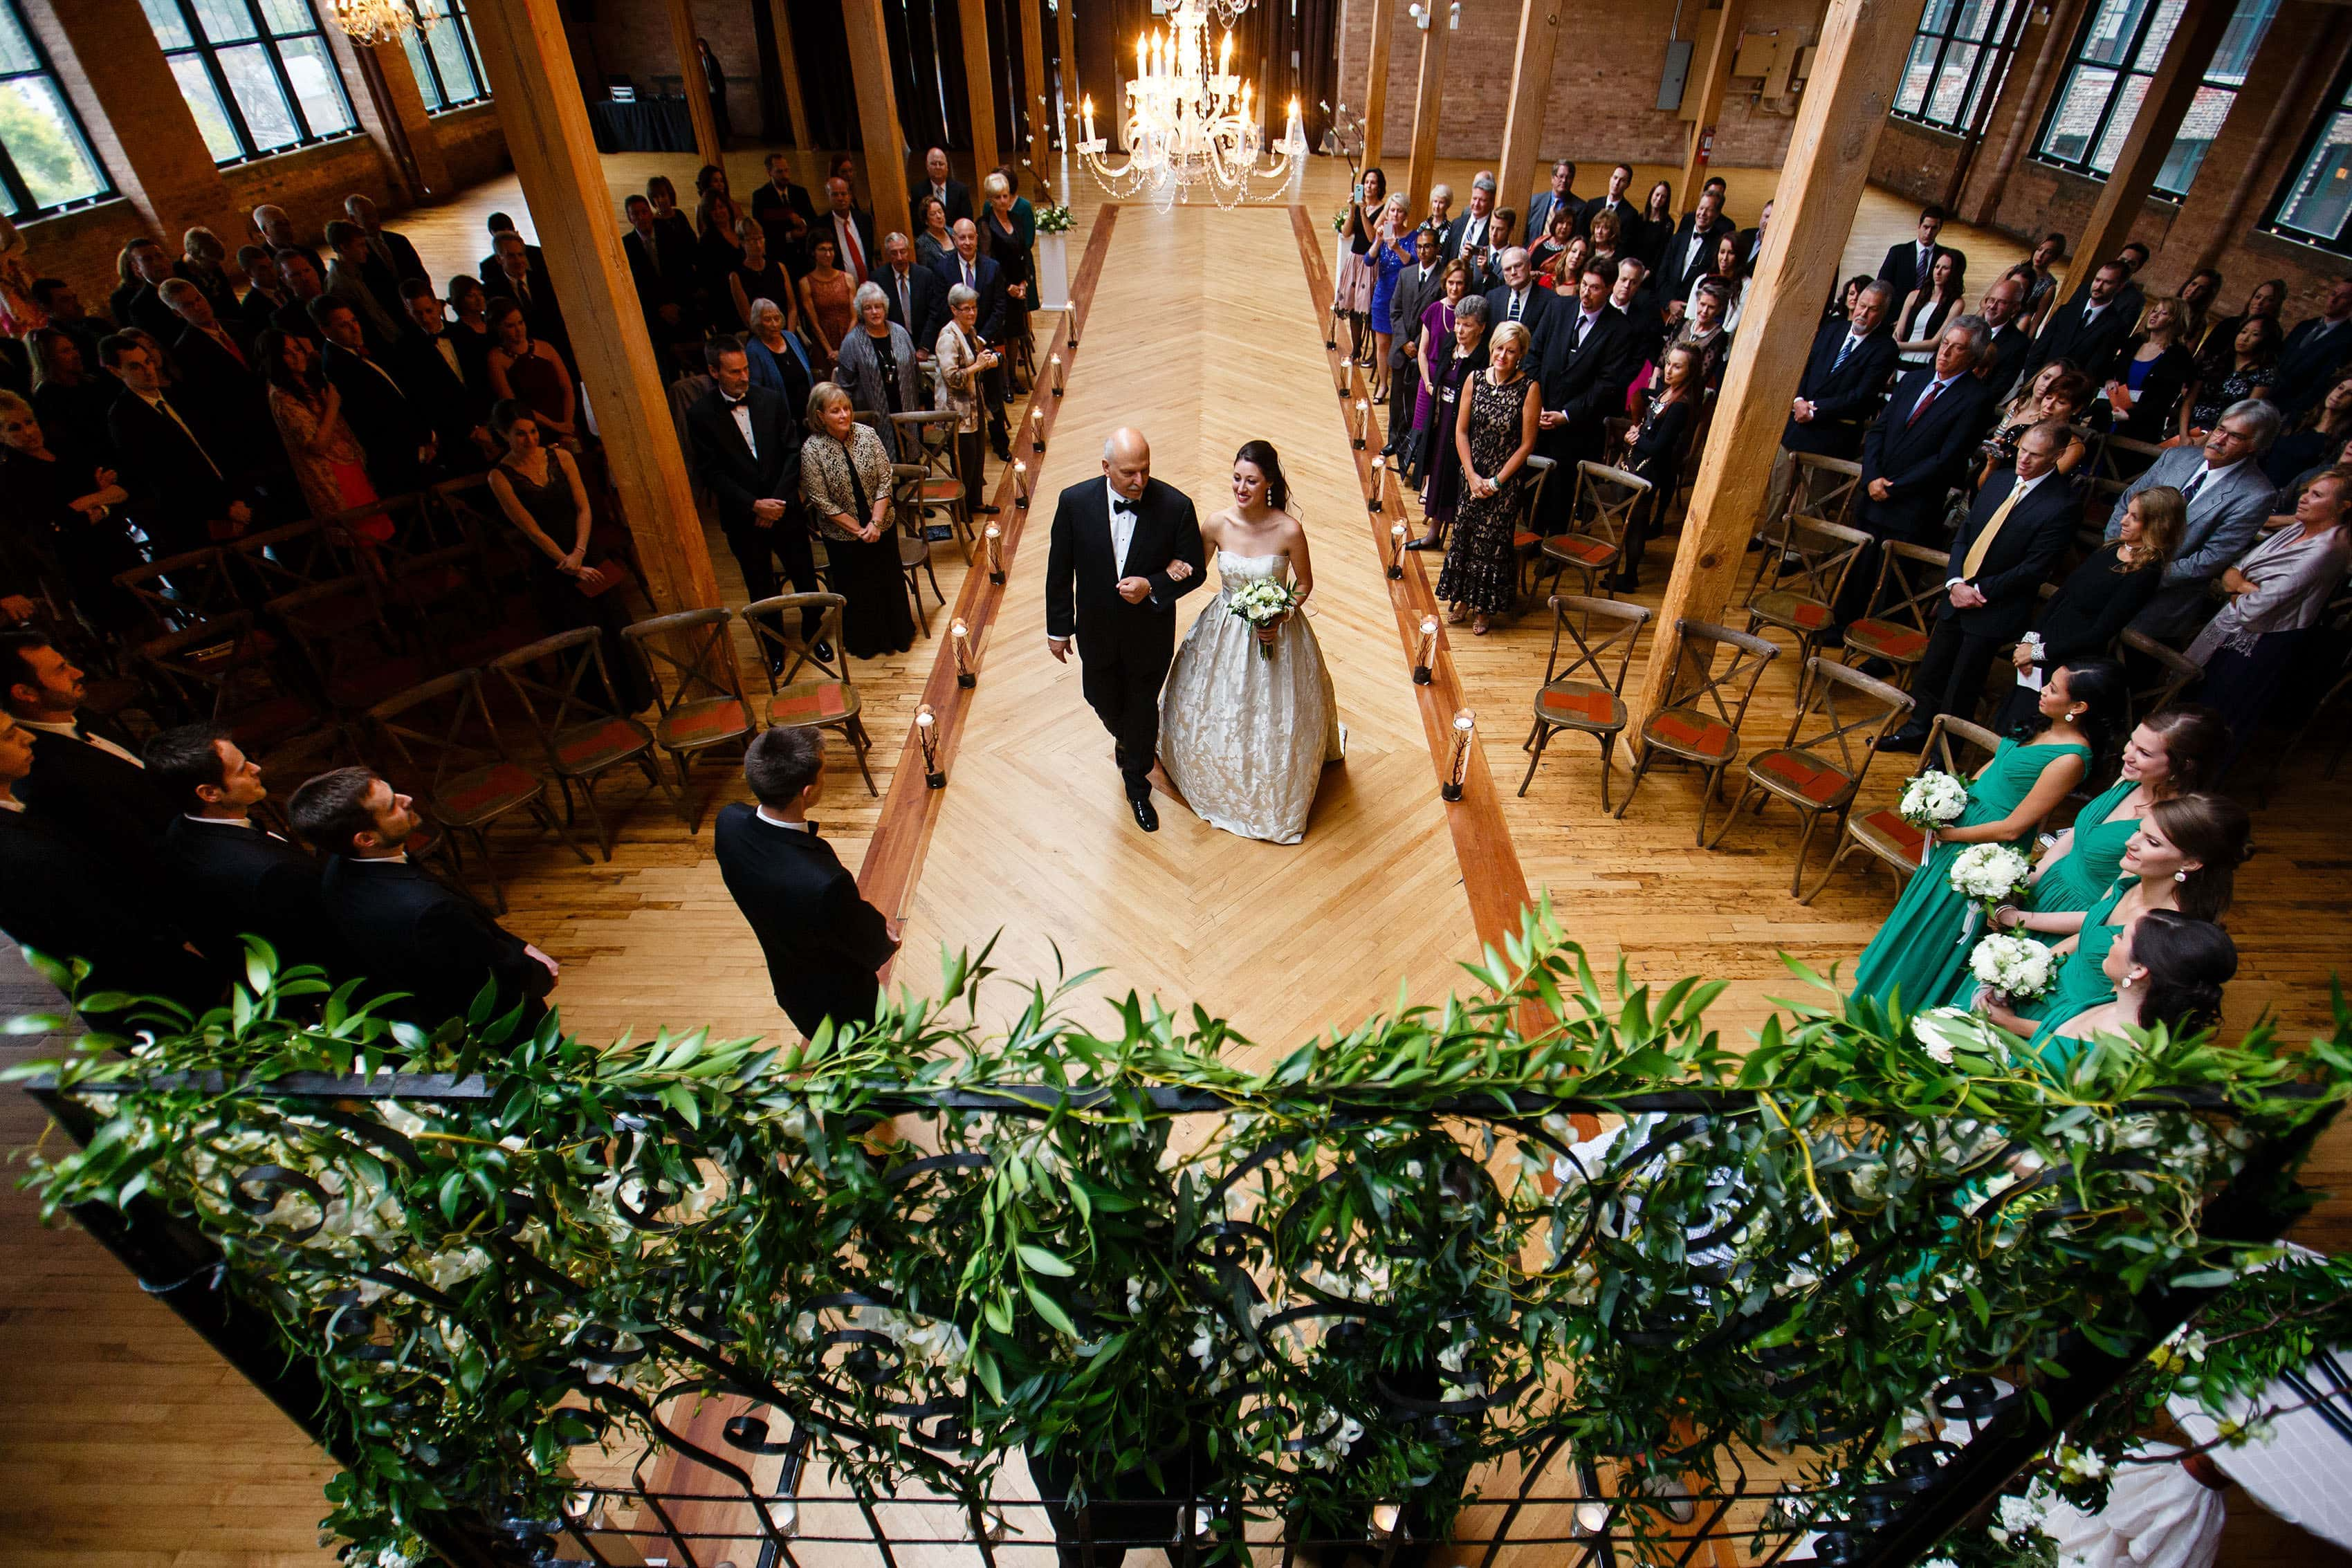 Bridgeport Art Center Wedding ceremony in Chicago